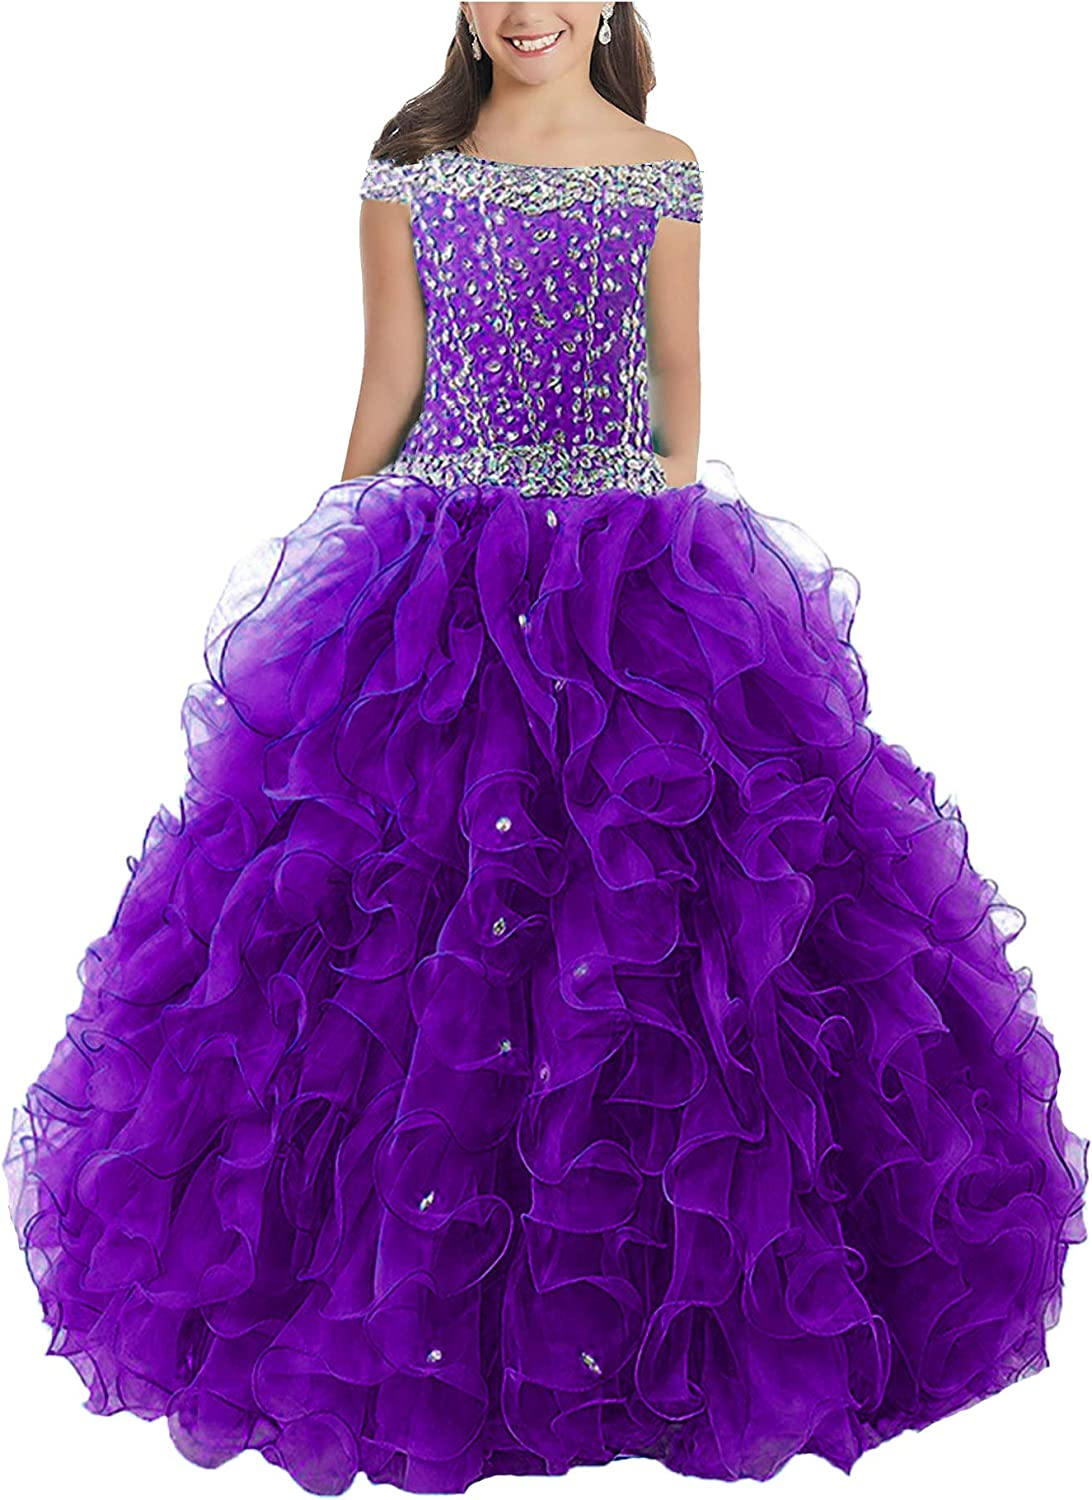 Junguan Off The Shoulder Pageant Dresses for Girls Long Aline Ruffles Princess Prom Dress Formal Ball Gowns TF003